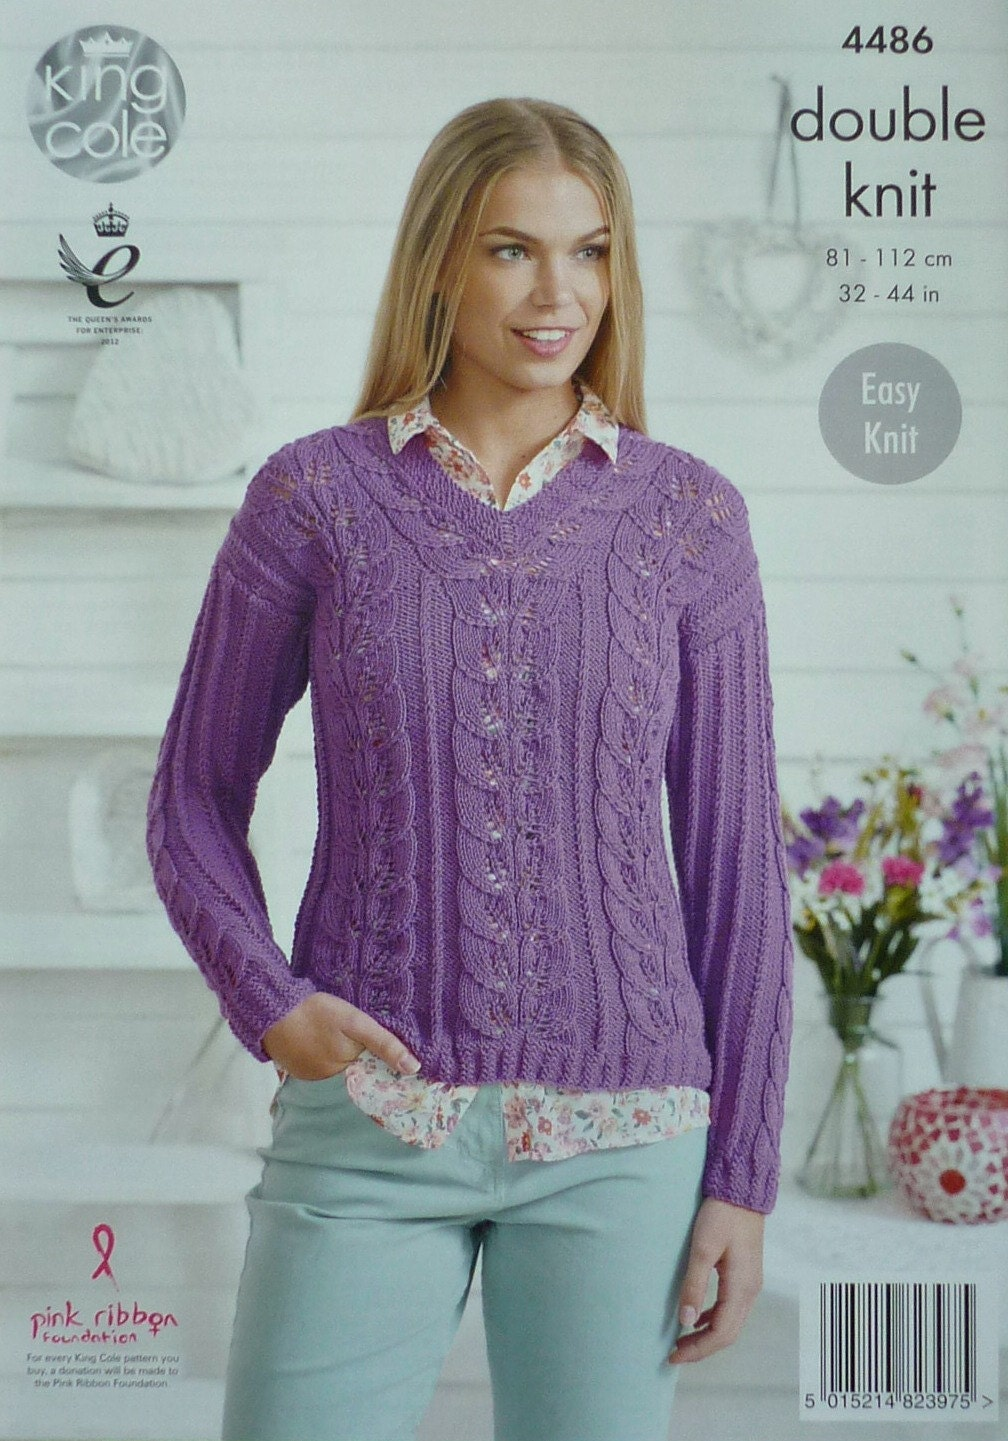 Knitting Pattern Ladies V Neck Jumper : Womens Knitting Pattern K4486 Ladies Easy Knit Long Sleeve V-Neck Lacy Jumper...